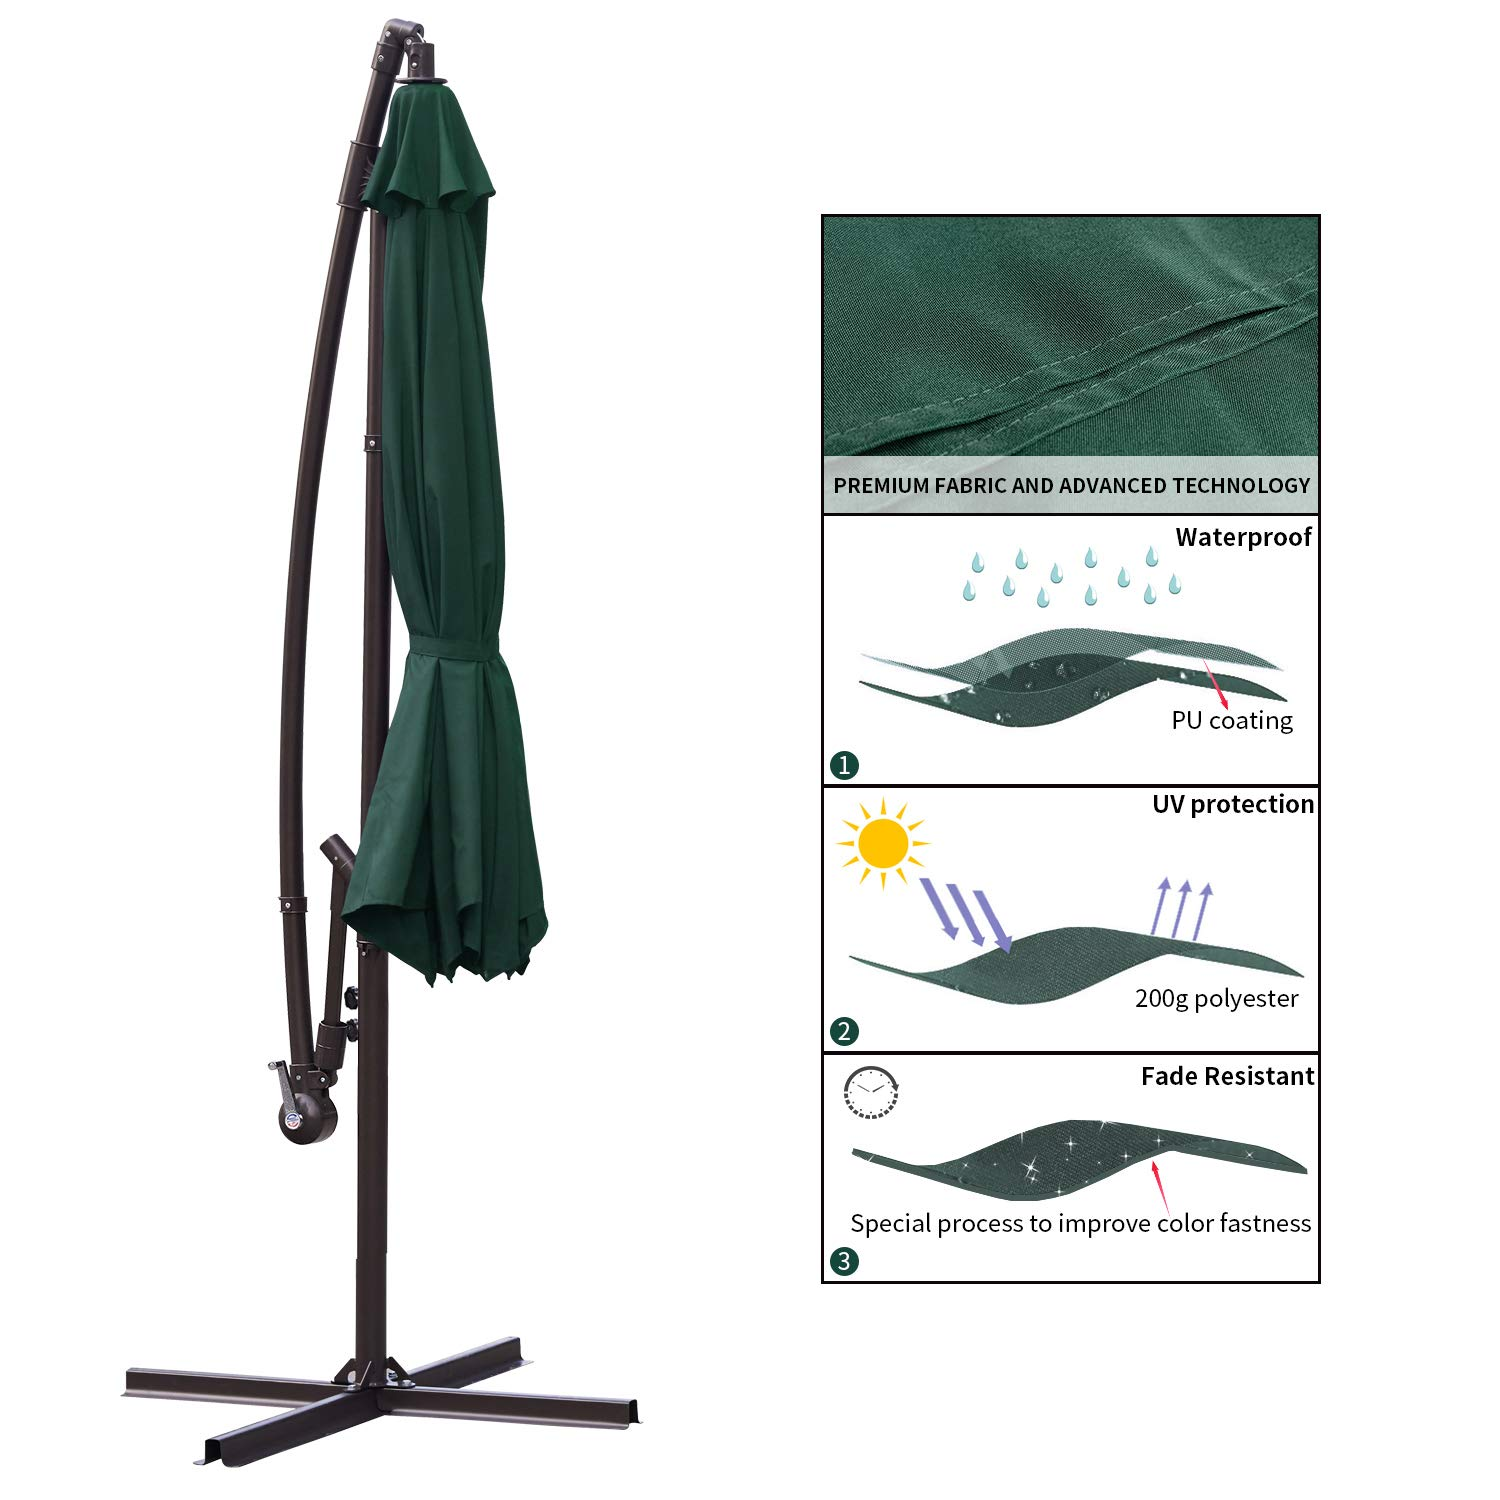 RUBEDER Offset Umbrella - 10Ft Cantilever Patio Hanging Umbrella,Outdoor Market Umbrellas with Crank Lift & Cross Base (10 Ft, Dark Green) by RUBEDER (Image #4)